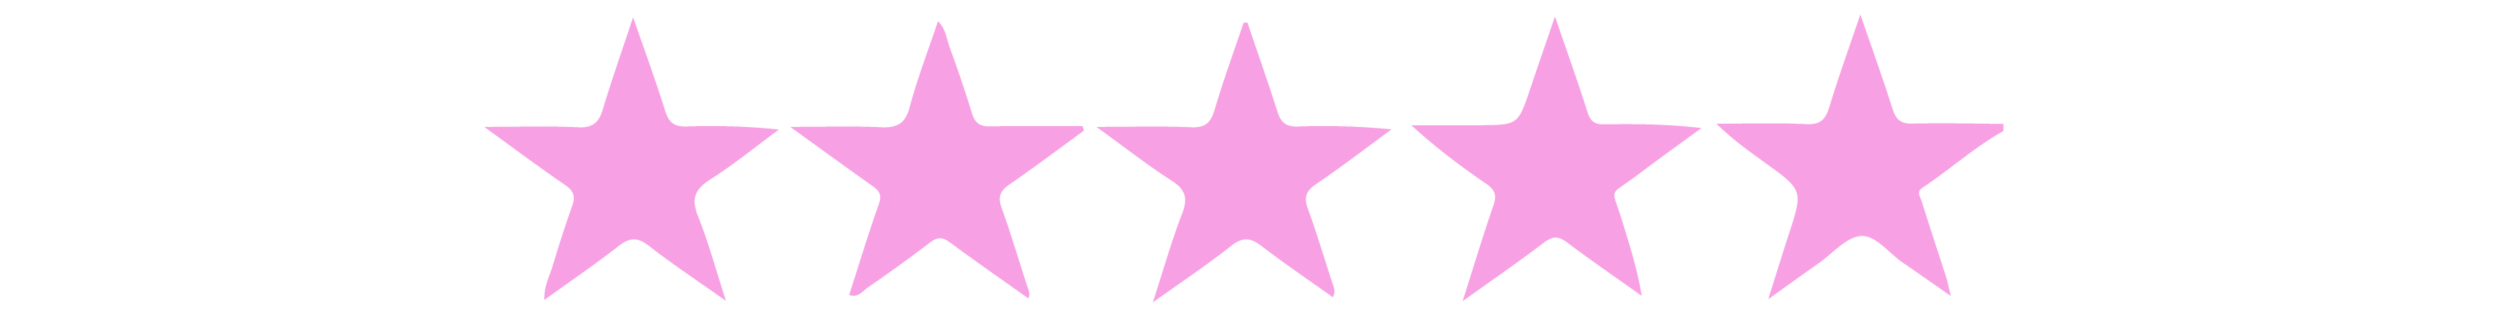 STAR3-37.png